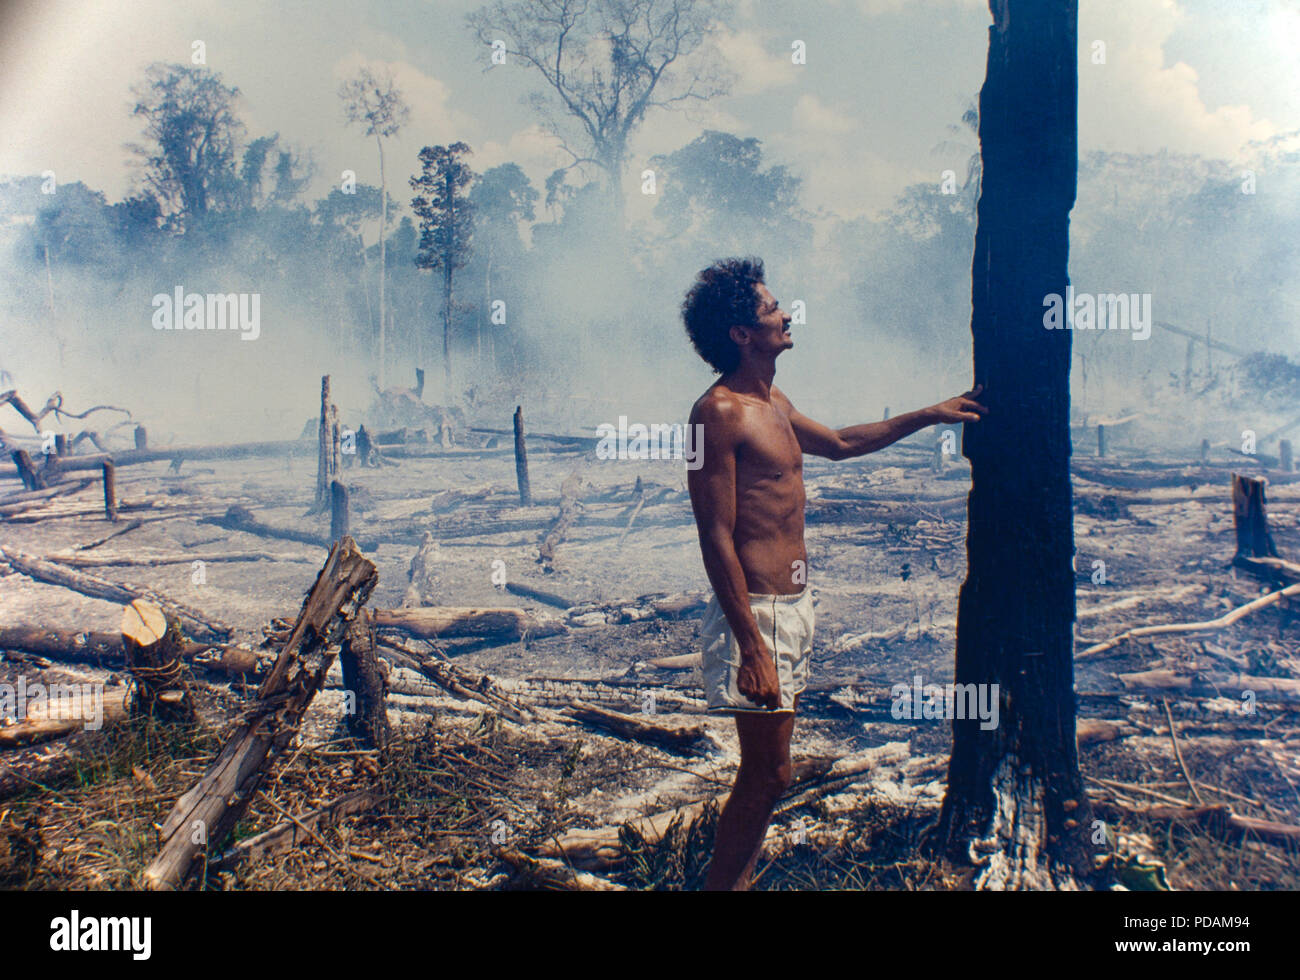 Logging, Amazon deforestation, slashed-and-burned patch of forest at Acre State, Brazil. - Stock Image